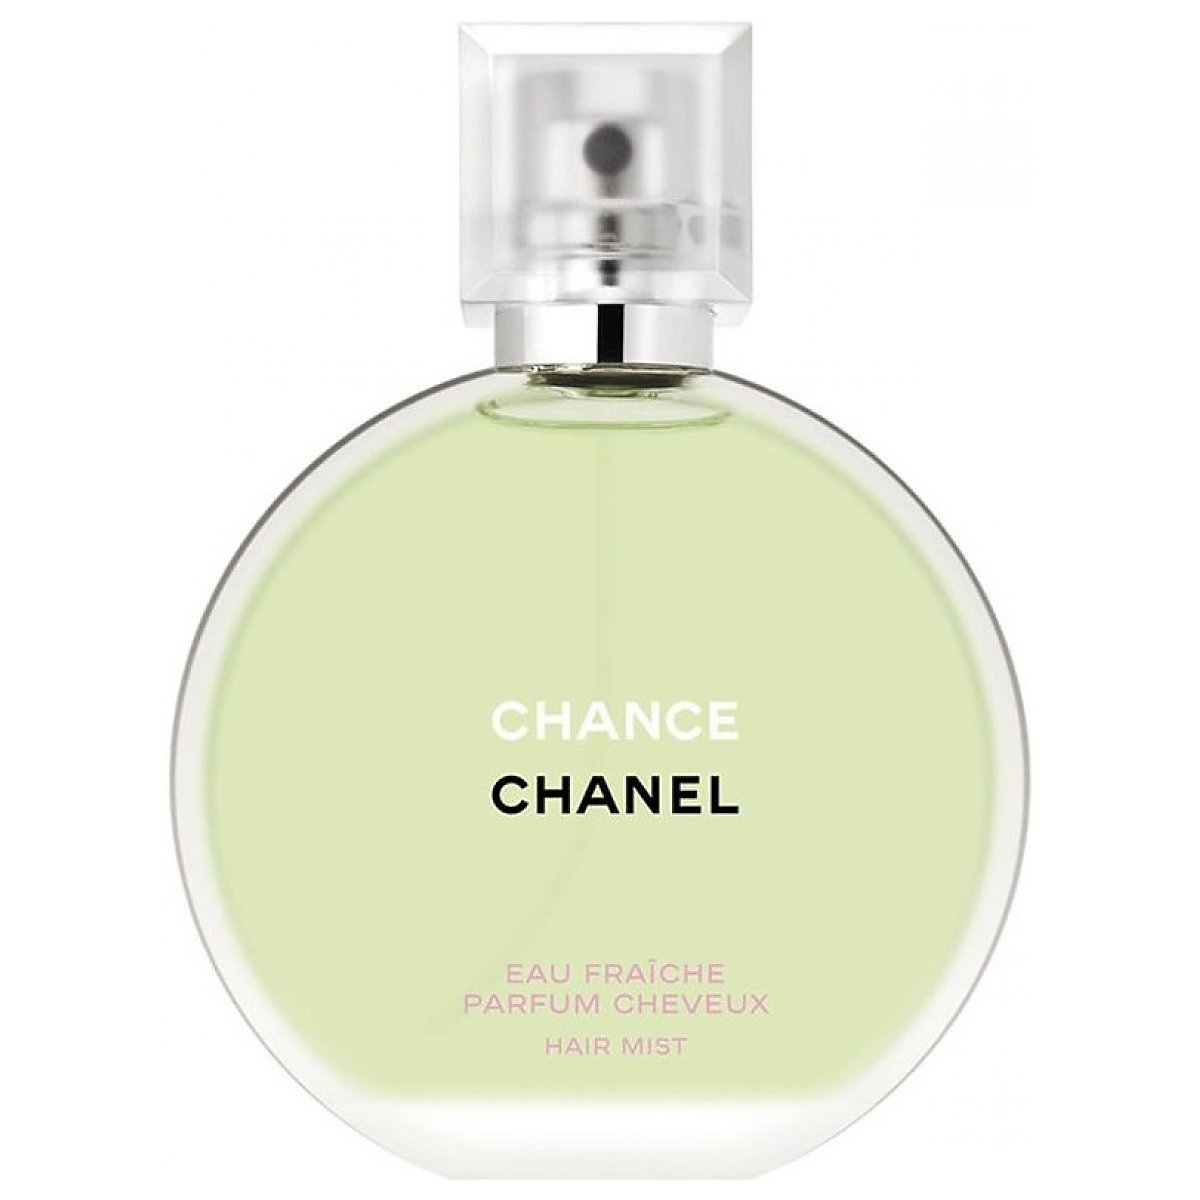 Chanel chance eau fraiche mgielka delikatna do wlosow 35ml for Chance eau fraîche